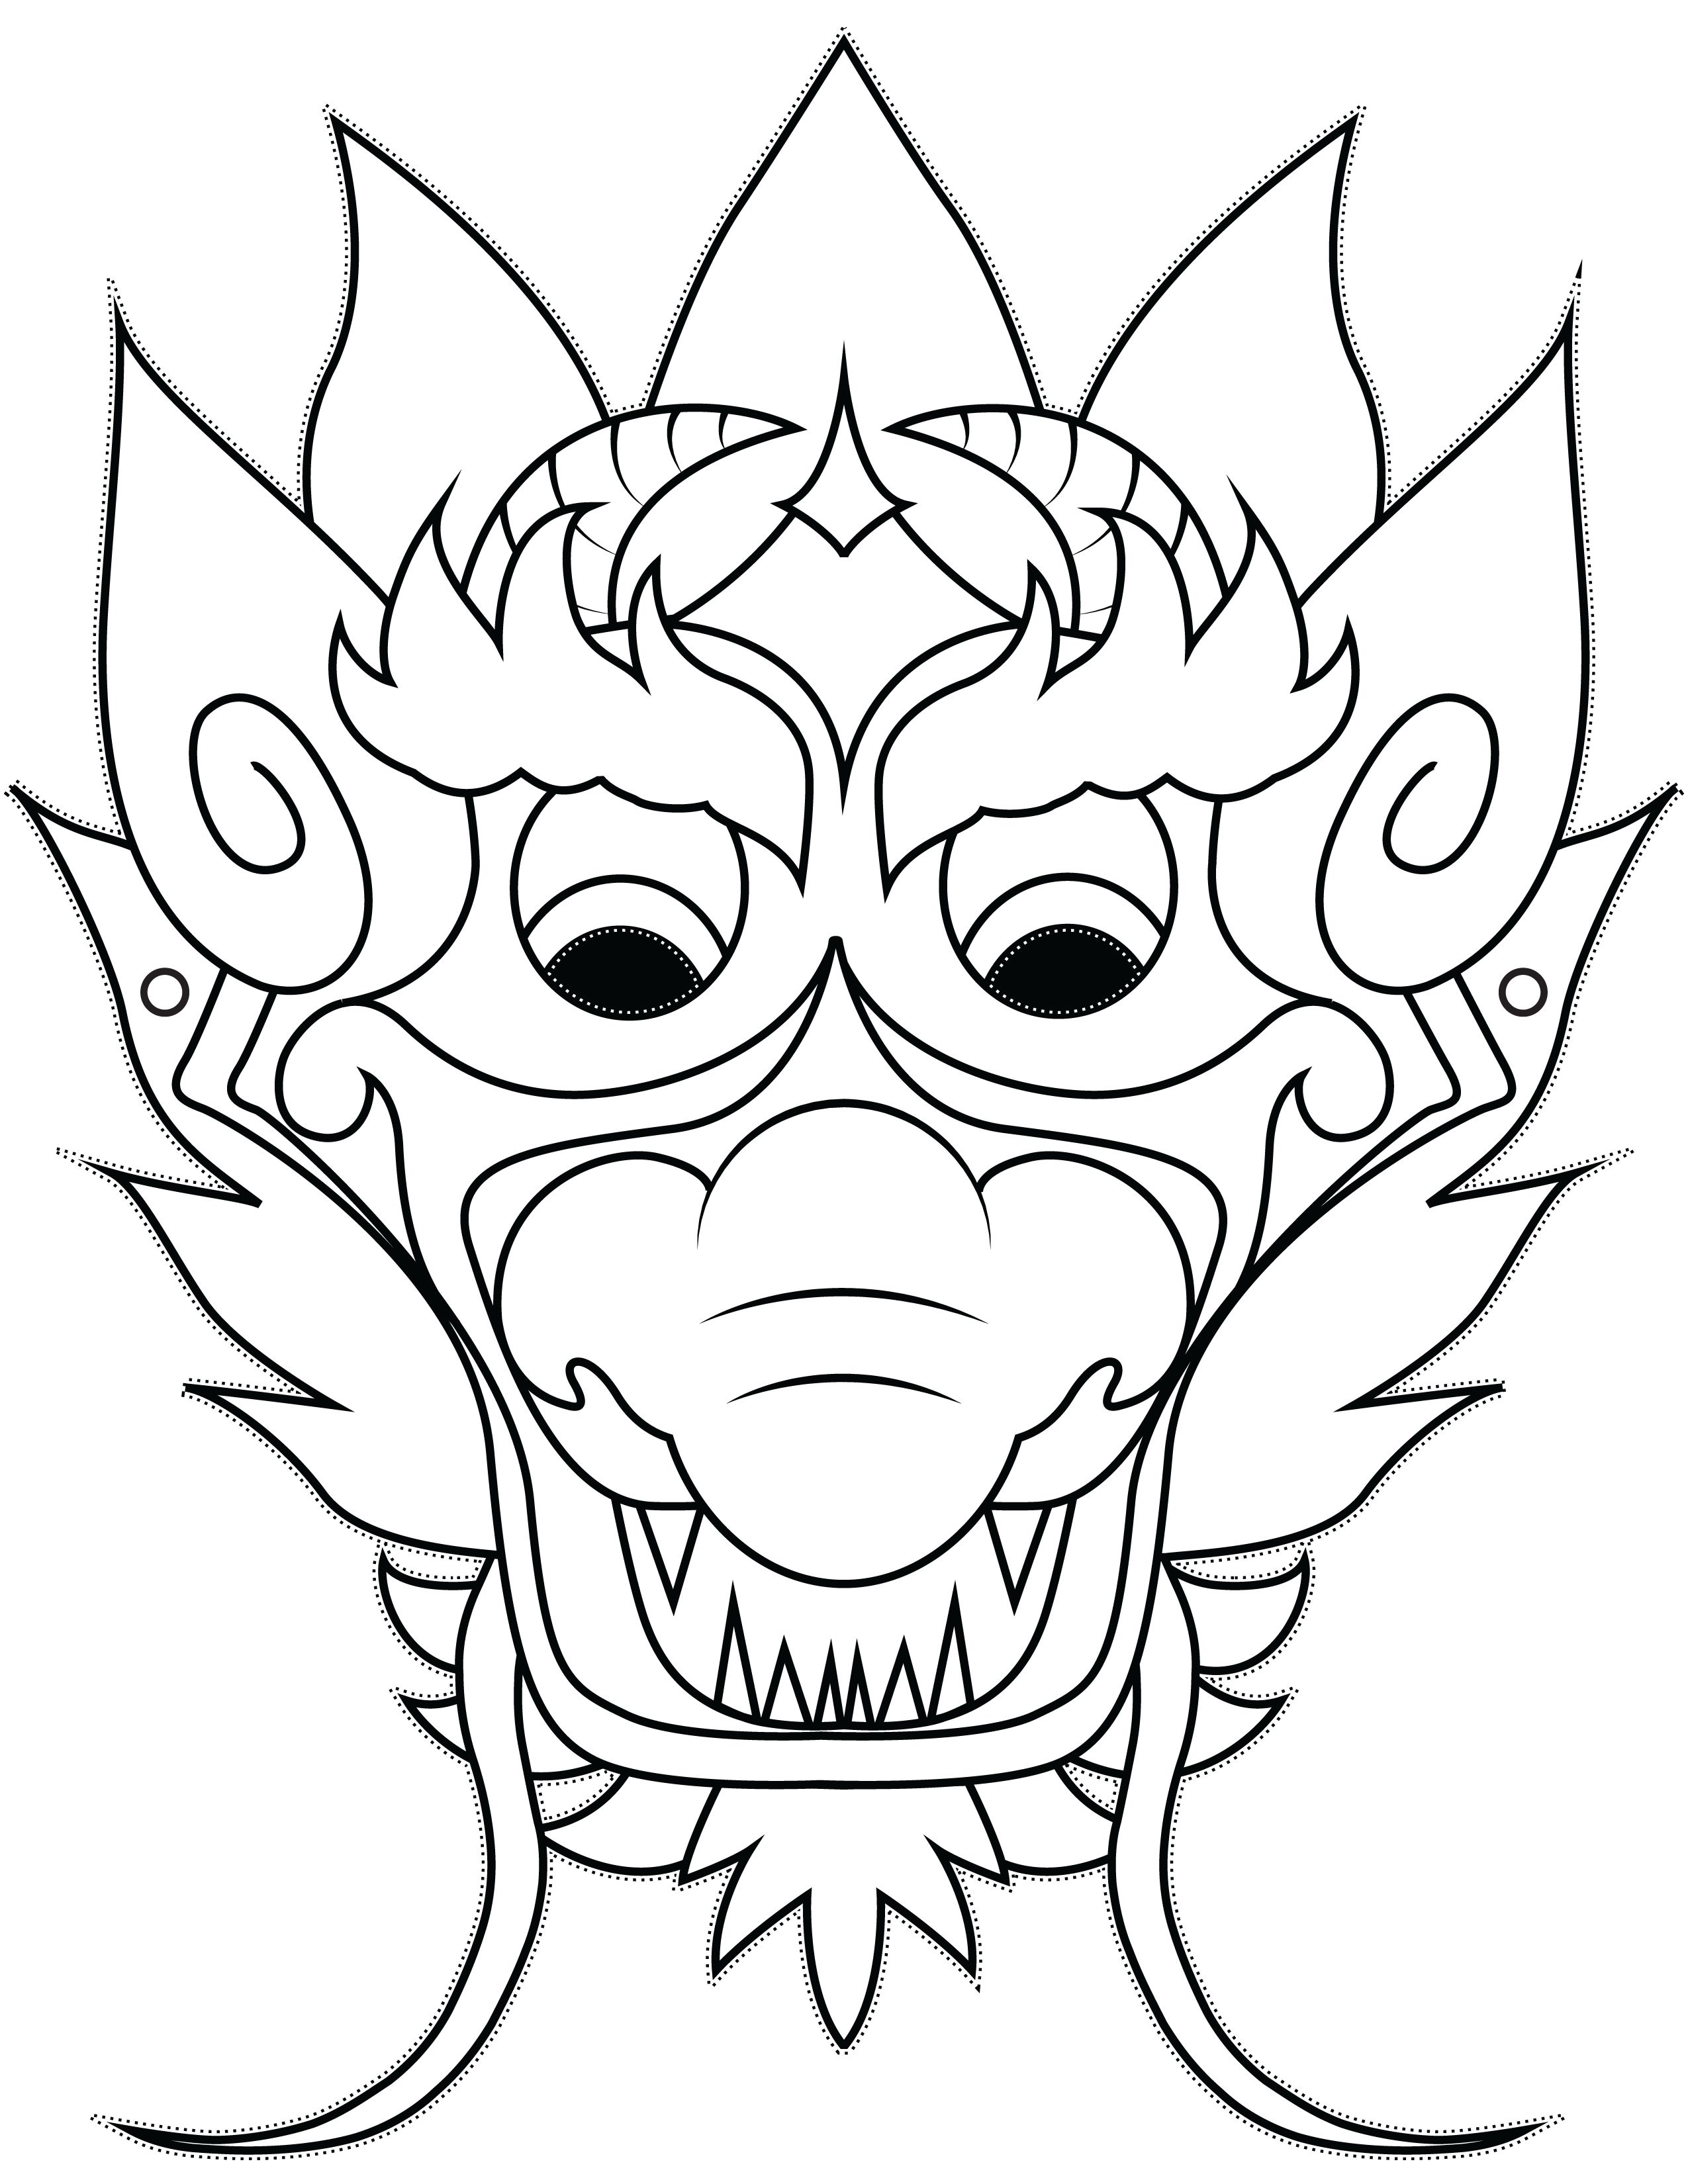 Artist clipart easy. Dragon mask simple and